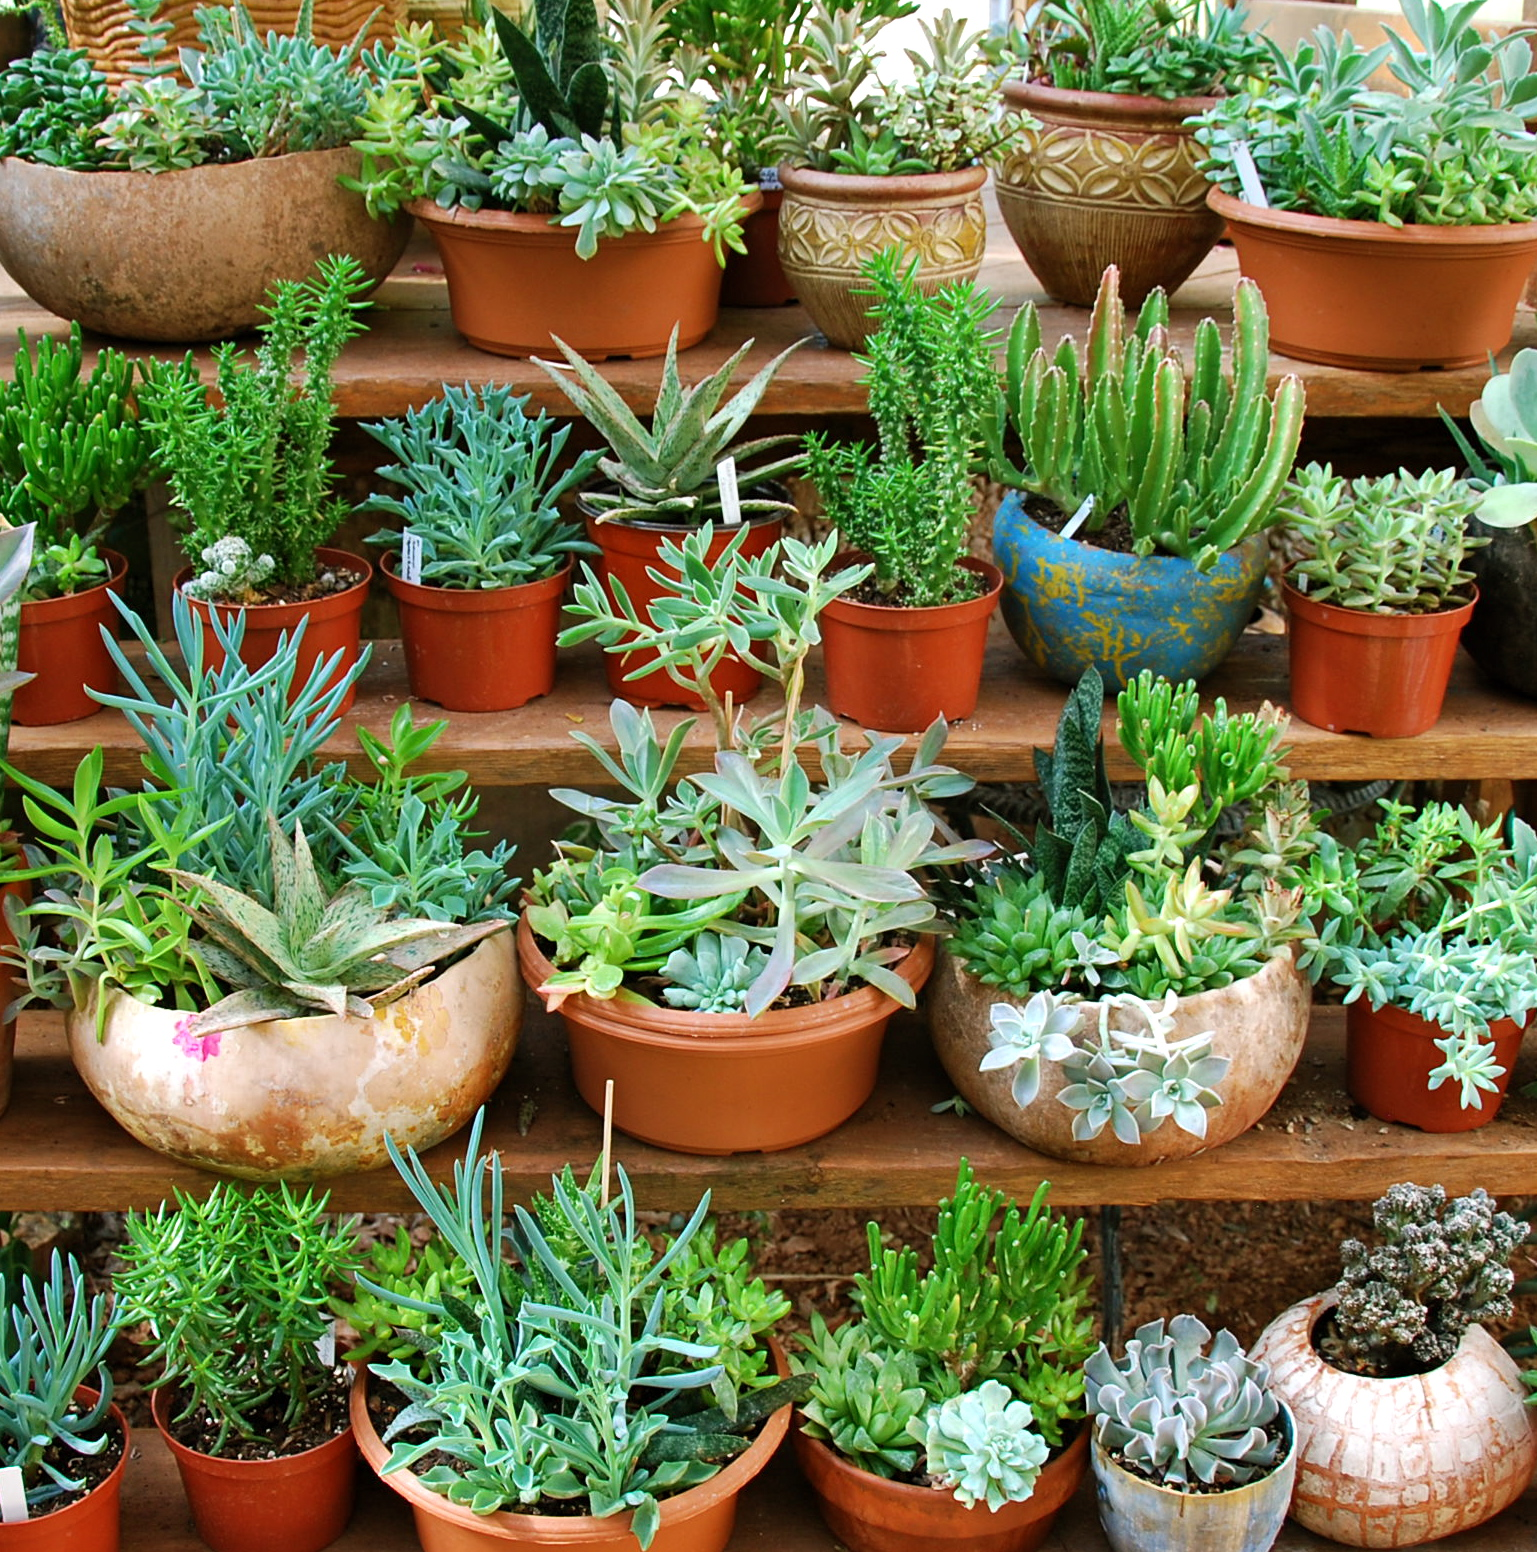 Arrangements in containers